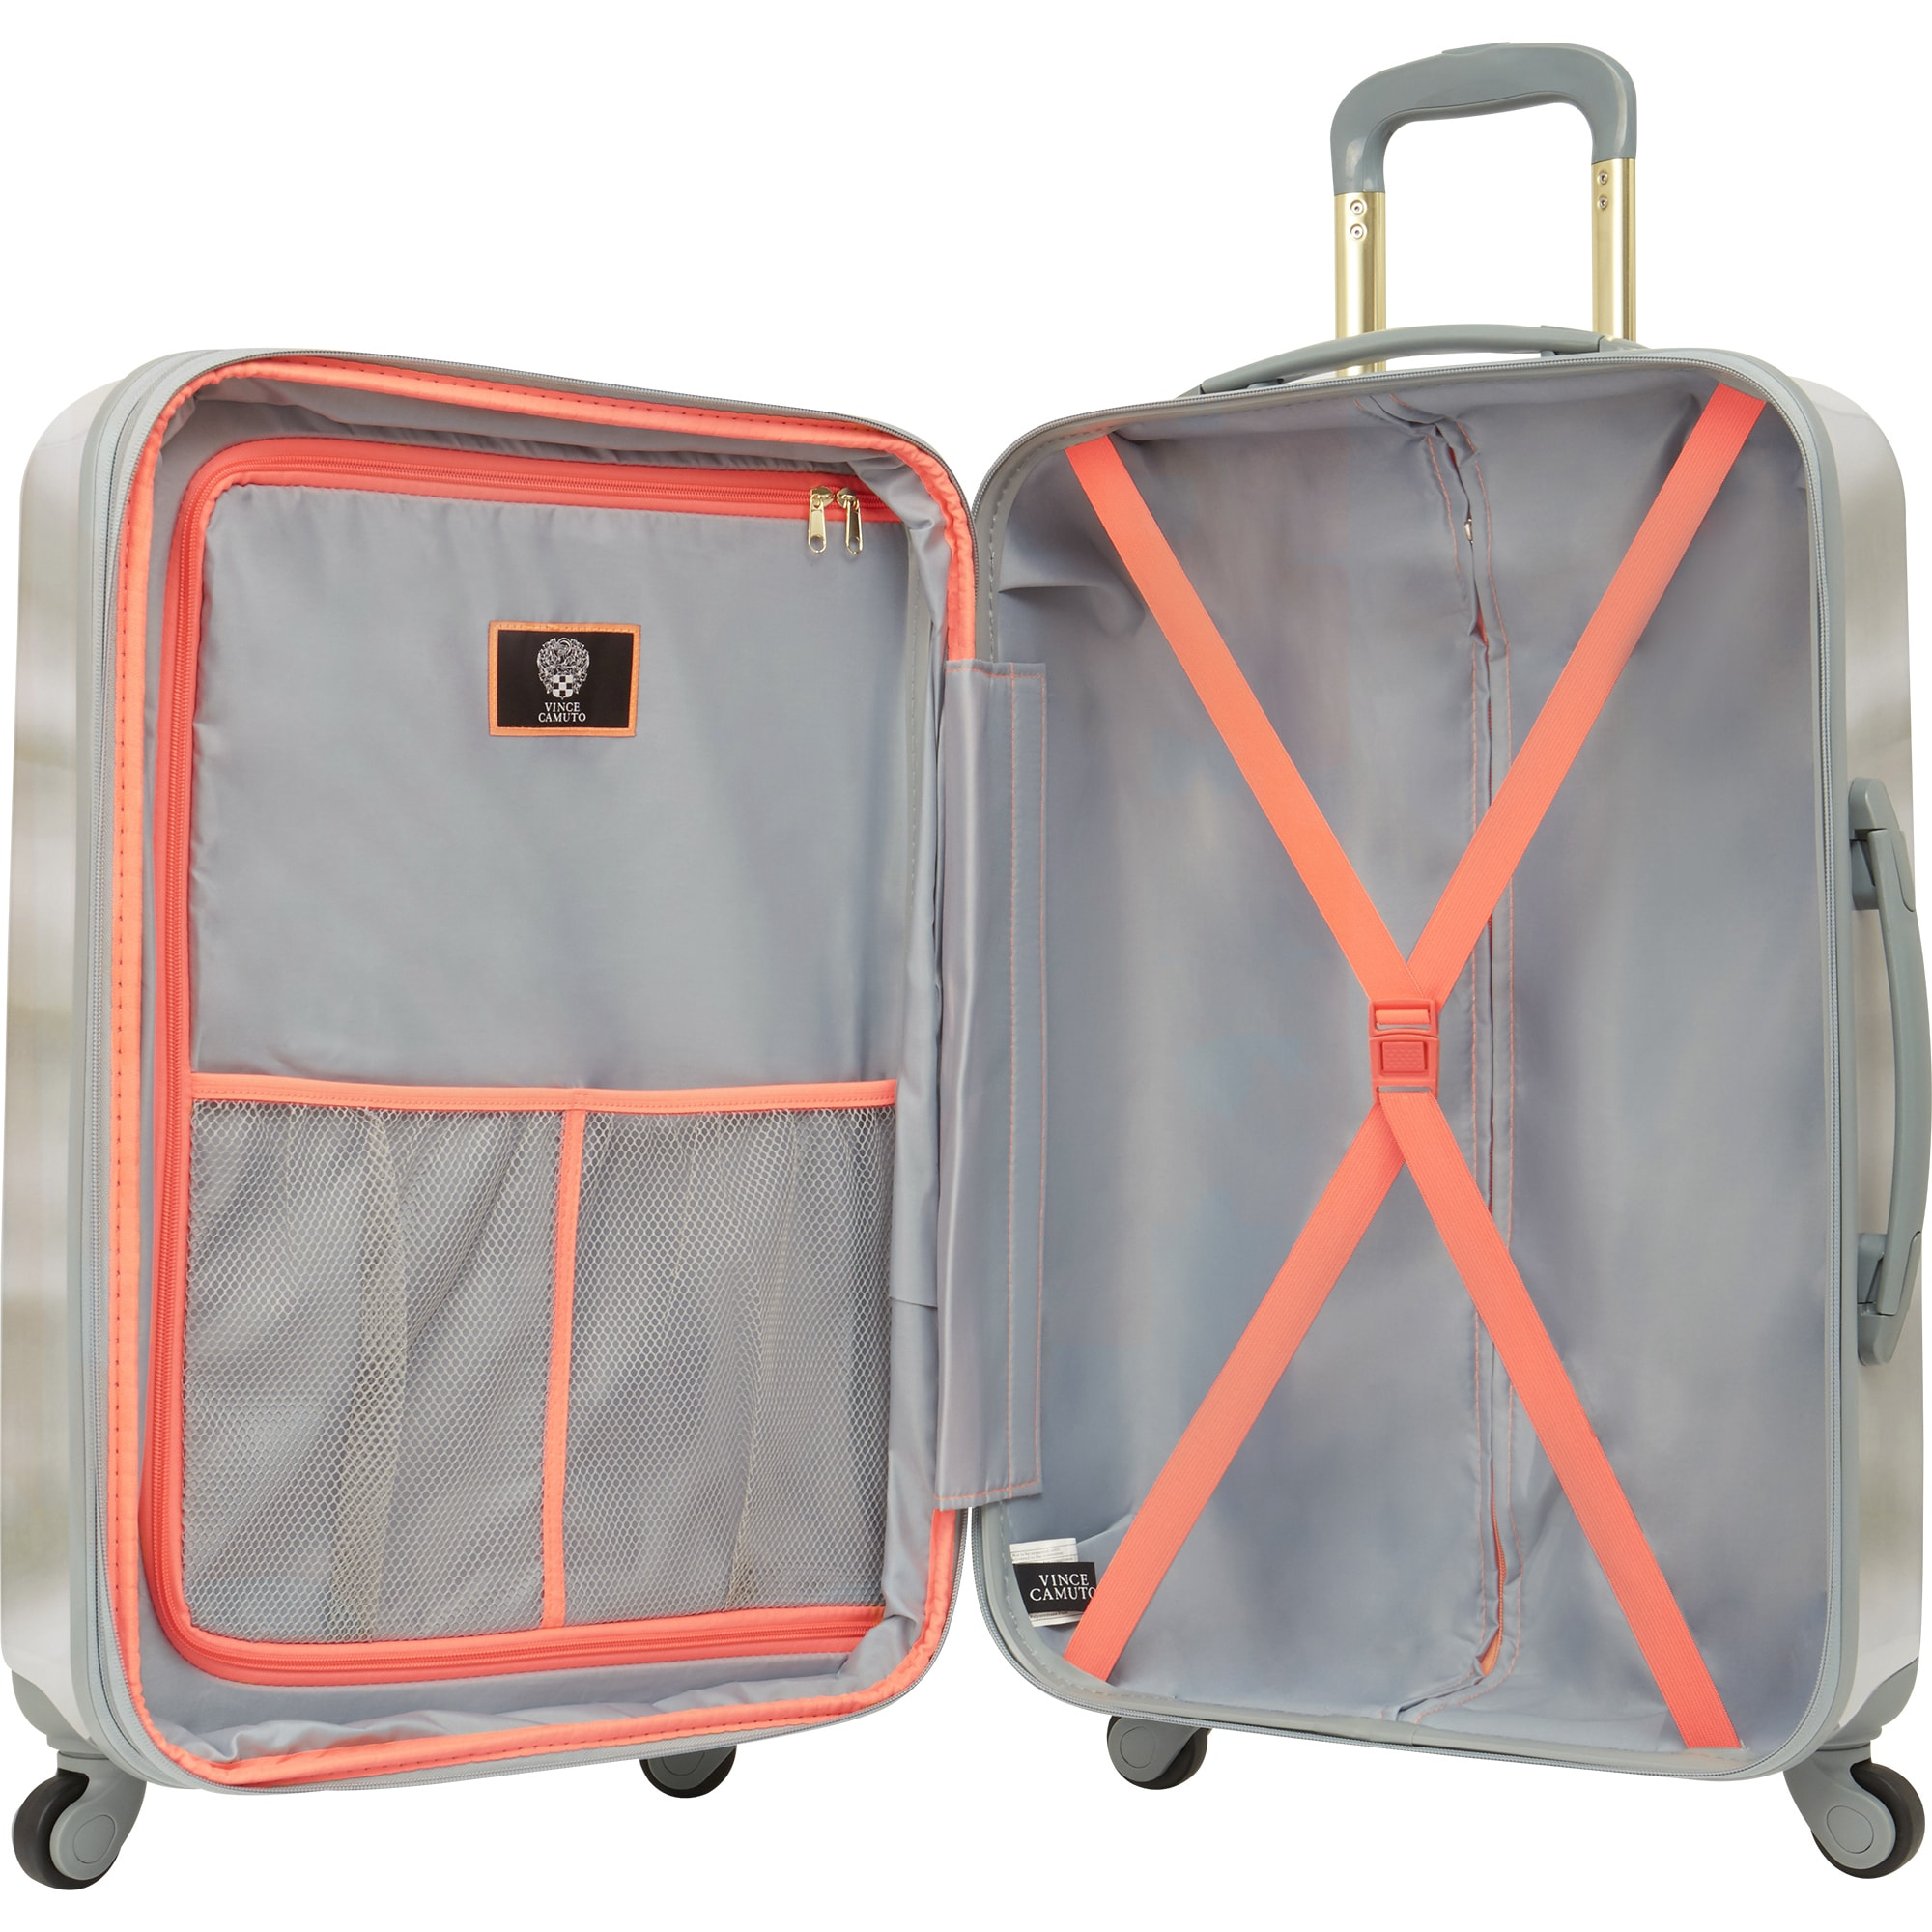 13a55ffee Shop Vince Camuto Perii 24-inch Expandable Hardside Spinner Upright Suitcase  - Free Shipping Today - Overstock - 20192729